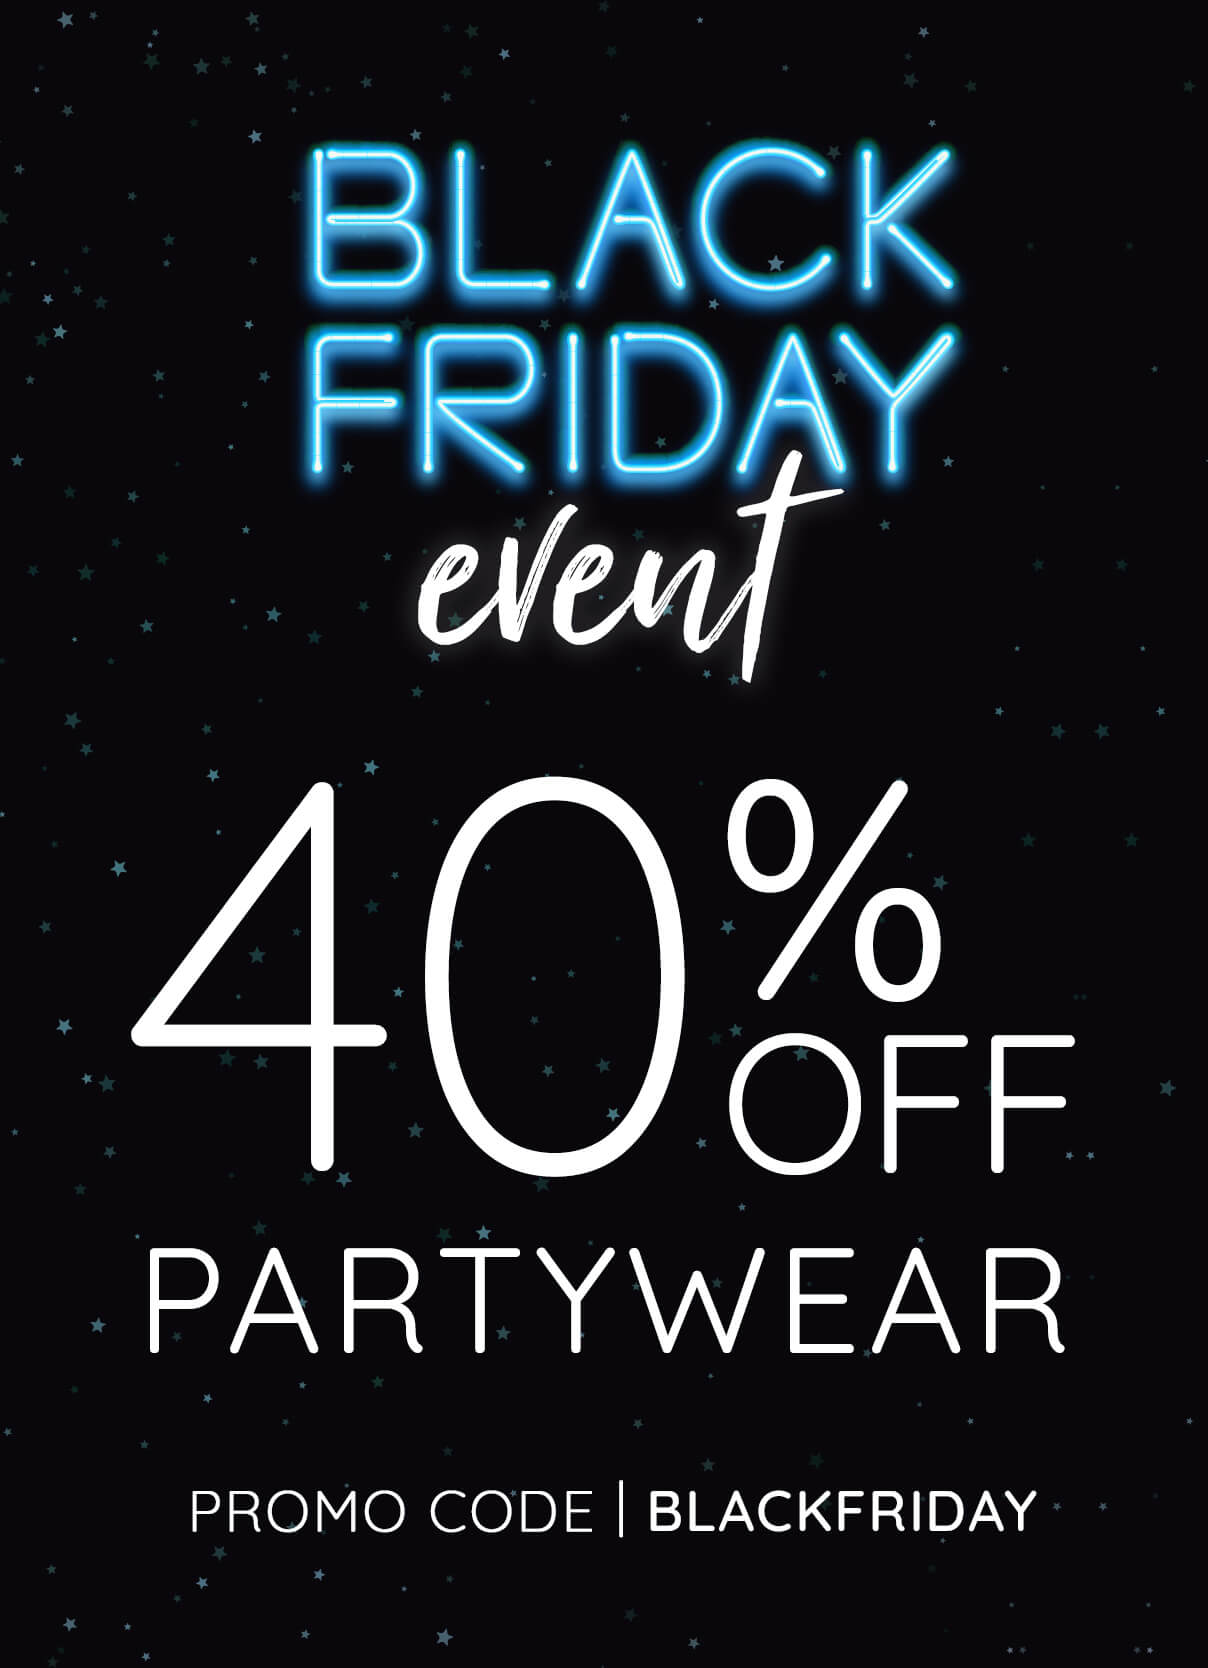 Black Friday Event - 40% Off Partywear